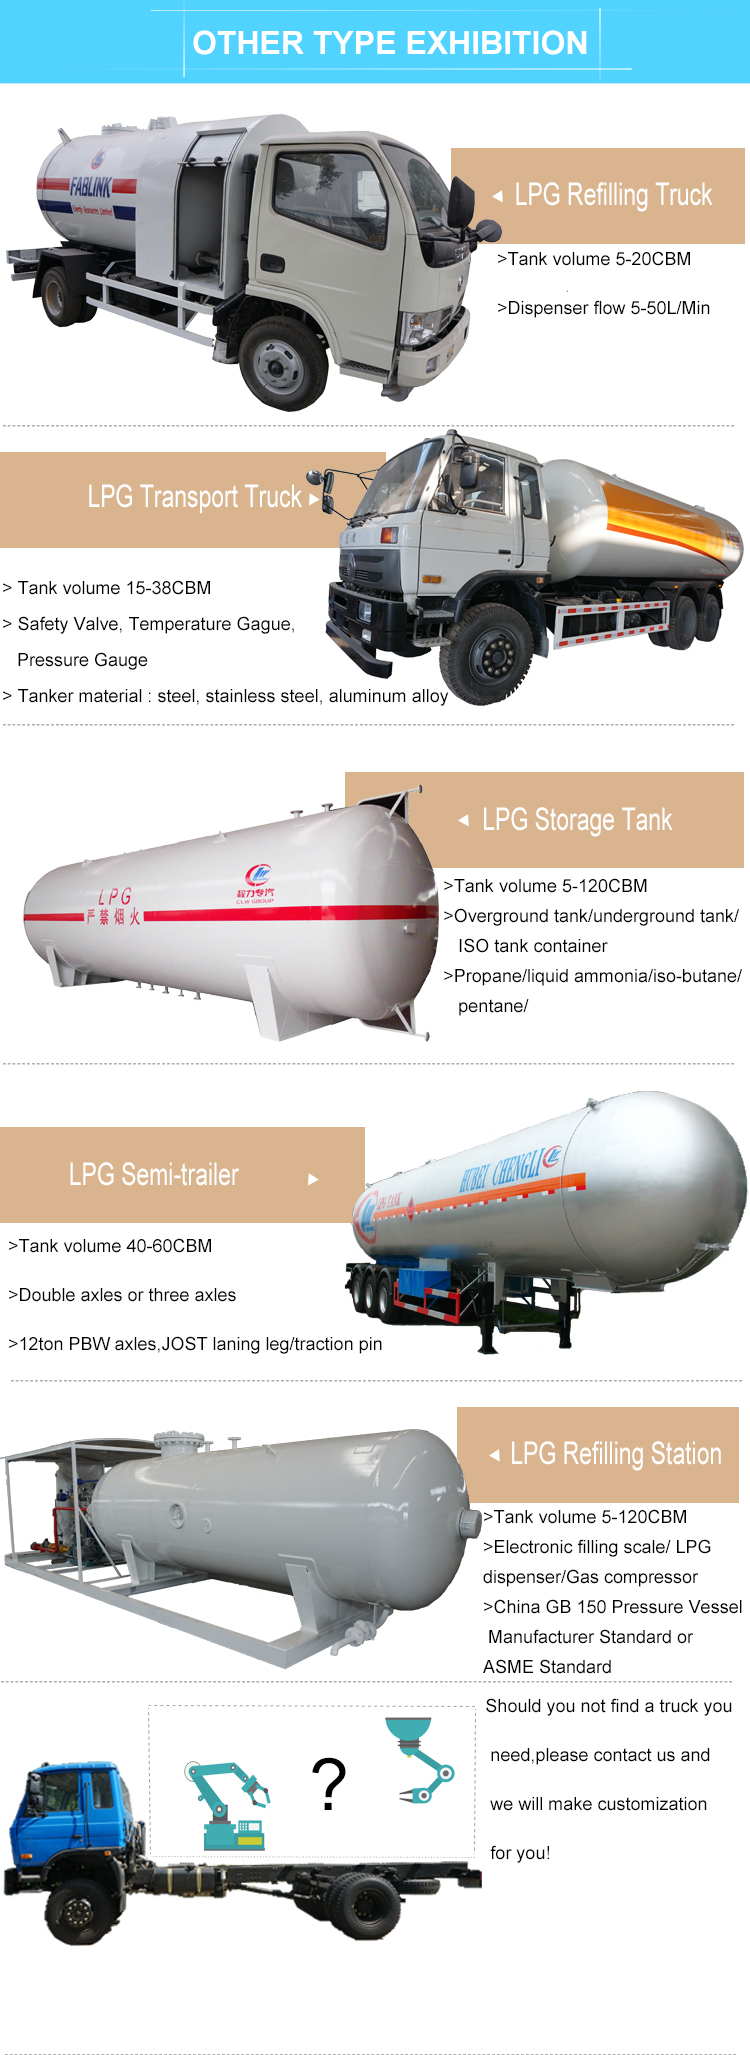 three axles 55CBM 55000L LPG semi trailer with HINO tractor truck